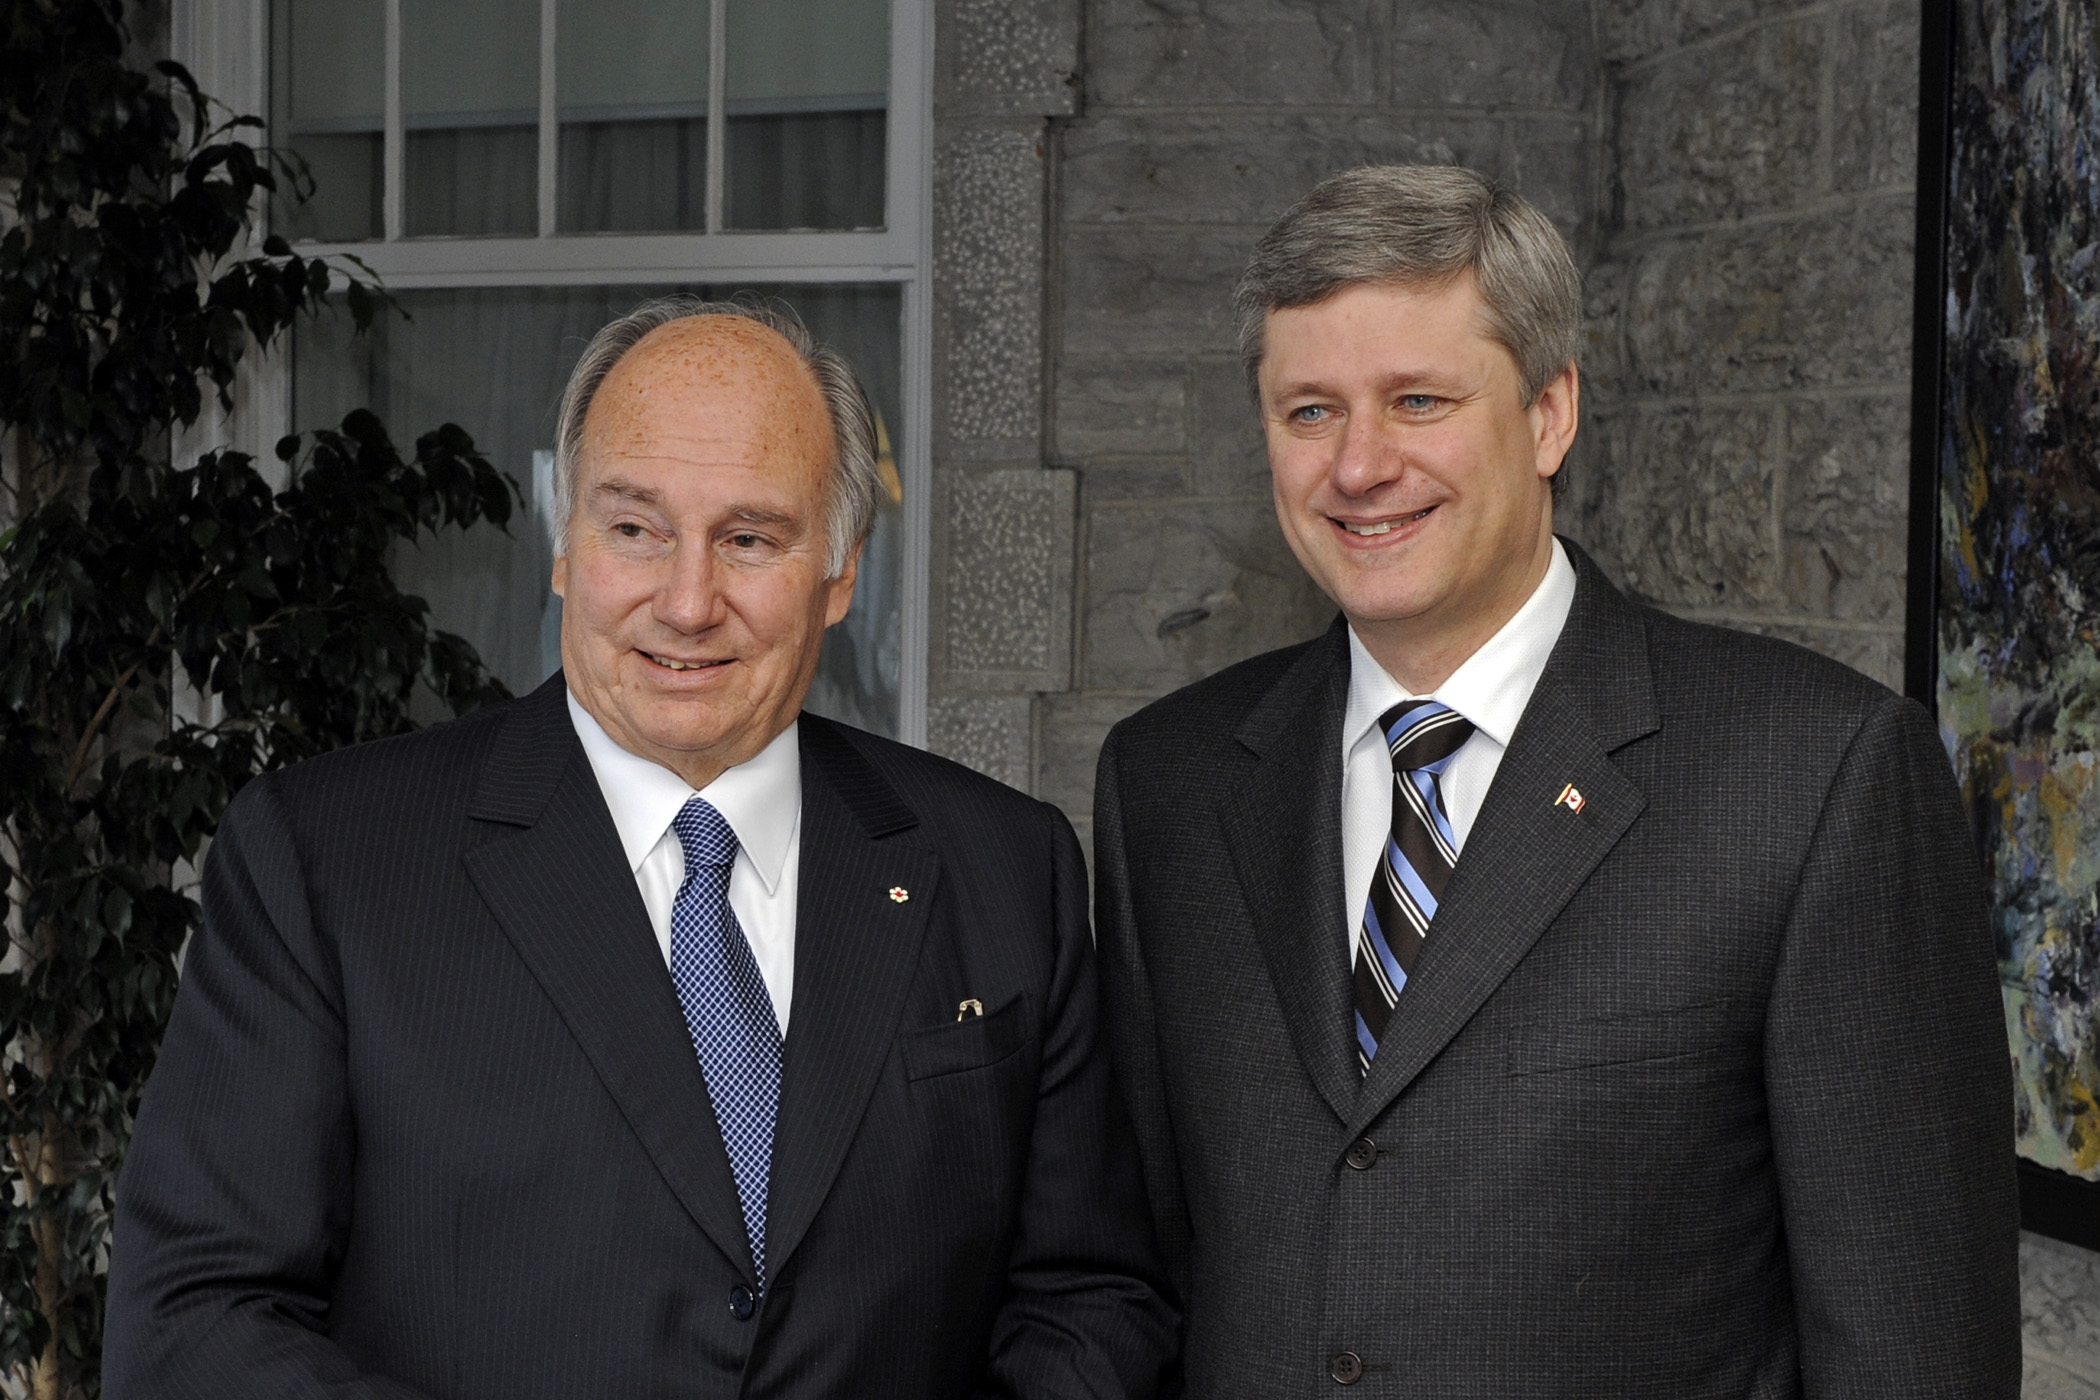 The Right Honourable Stephen Harper, Prime Minister of Canada, with Mawlana Hazar Imam in front of the Prime Minister's residence at 24 Sussex Drive in Ottawa. Photo: Gary Otte